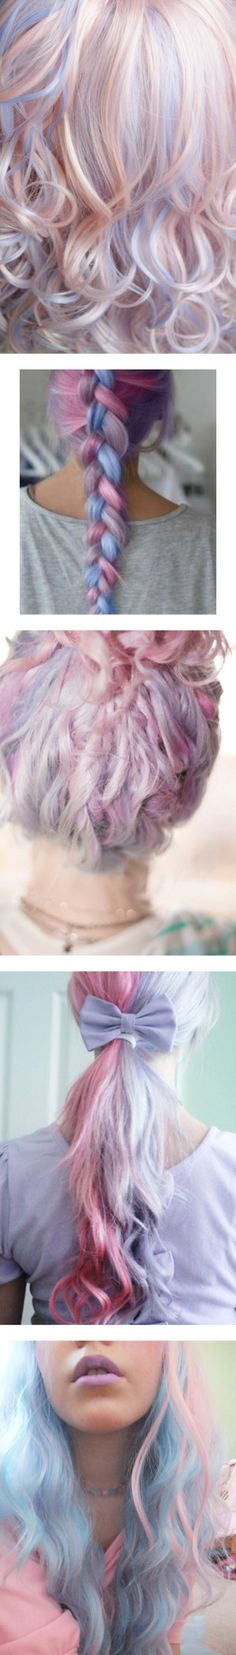 """""""Pastel Hair"""" by liz-wade ❤ liked on Polyvore"""